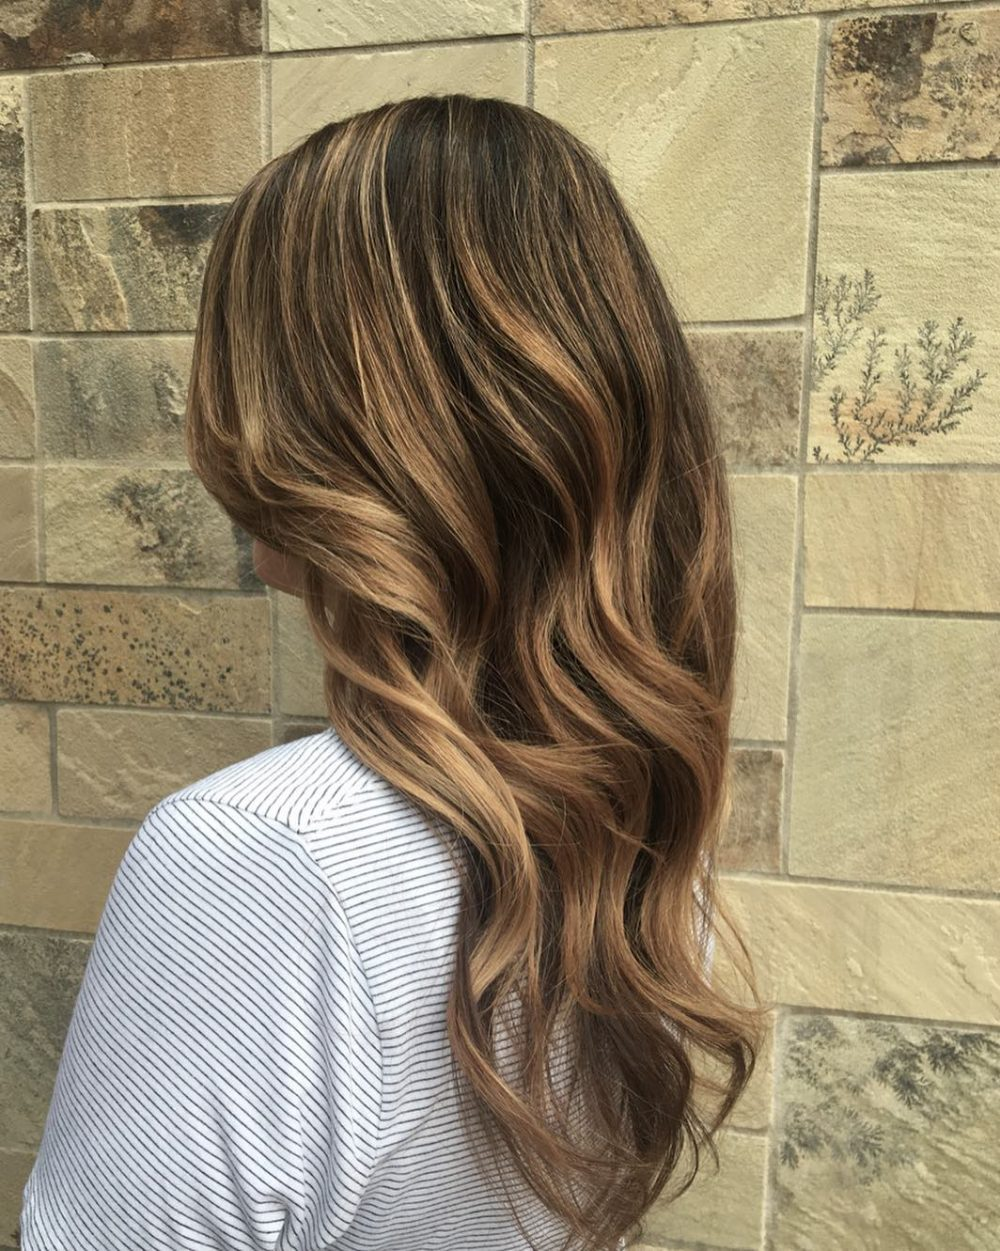 22 Best Honey Brown Hair Color Ideas For Light Or Dark Hair